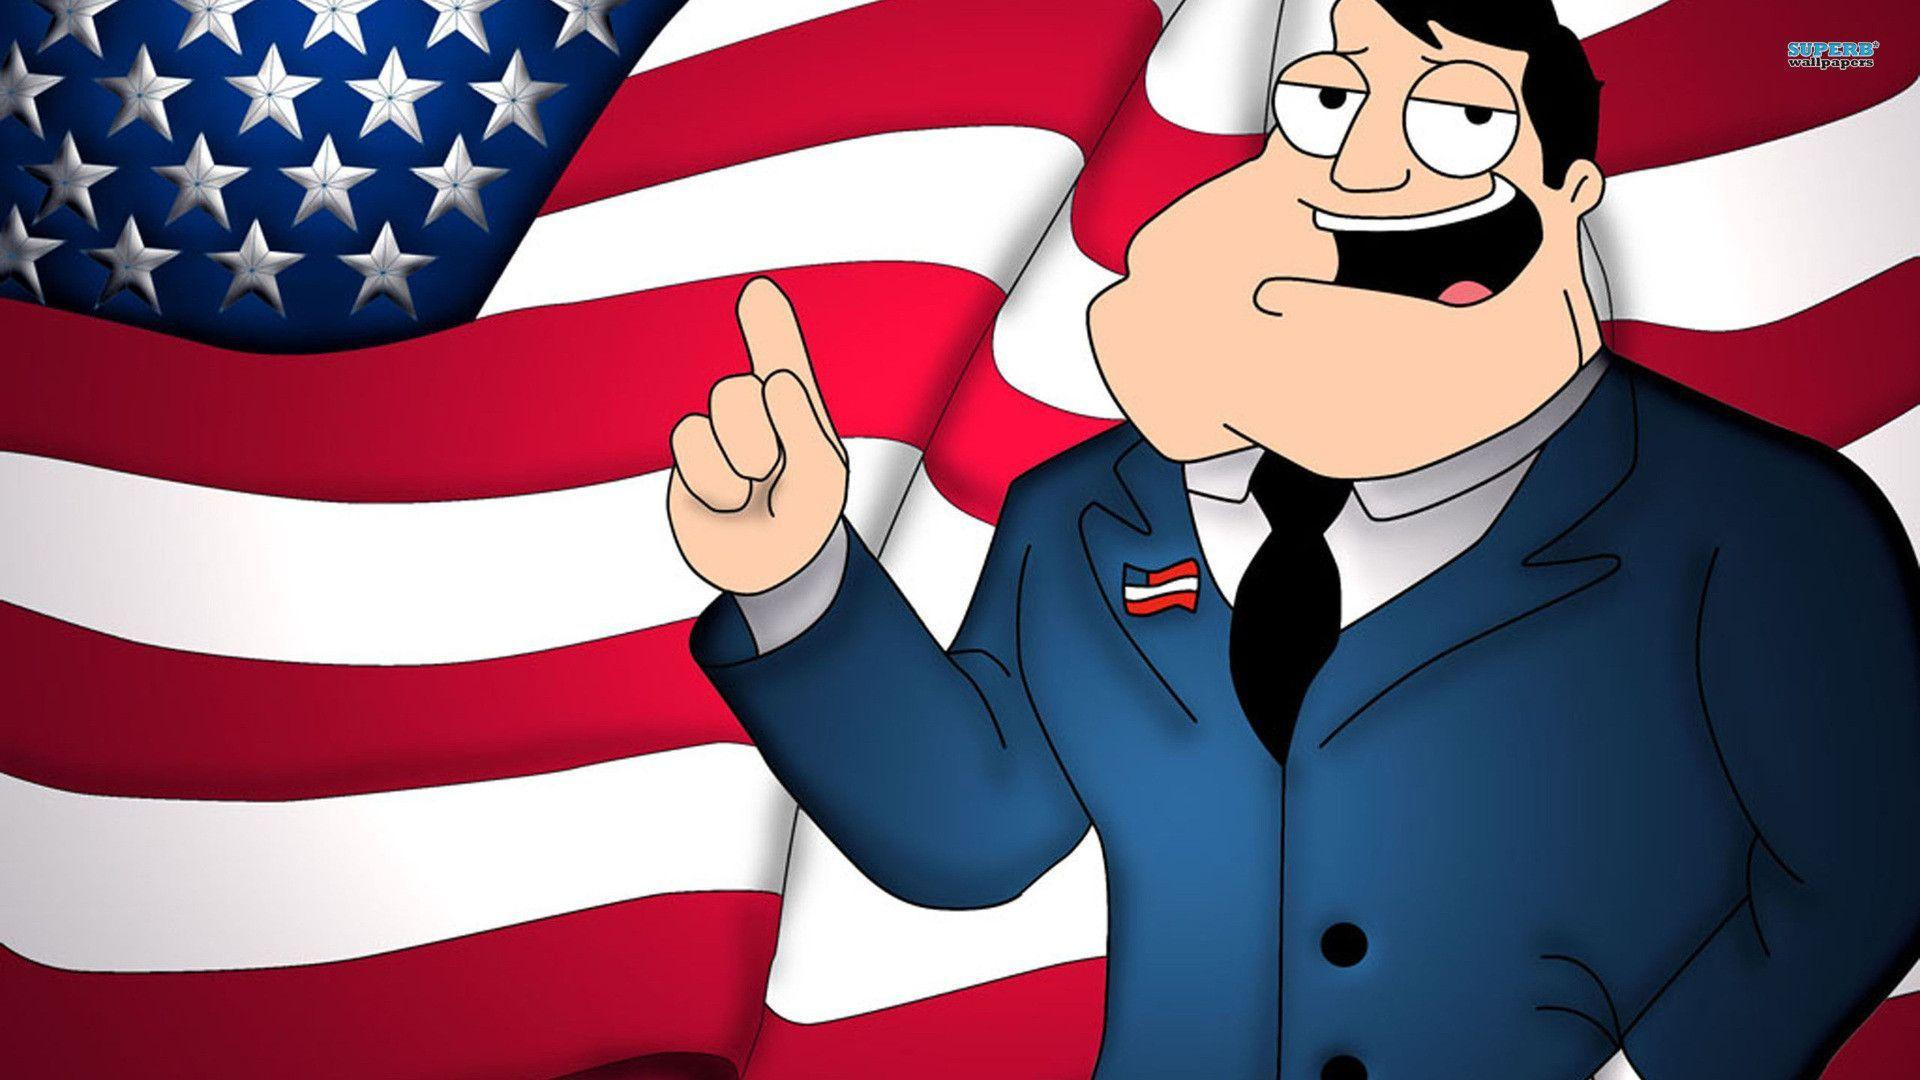 Stan Smith - American Dad wallpaper - Cartoon wallpapers - #